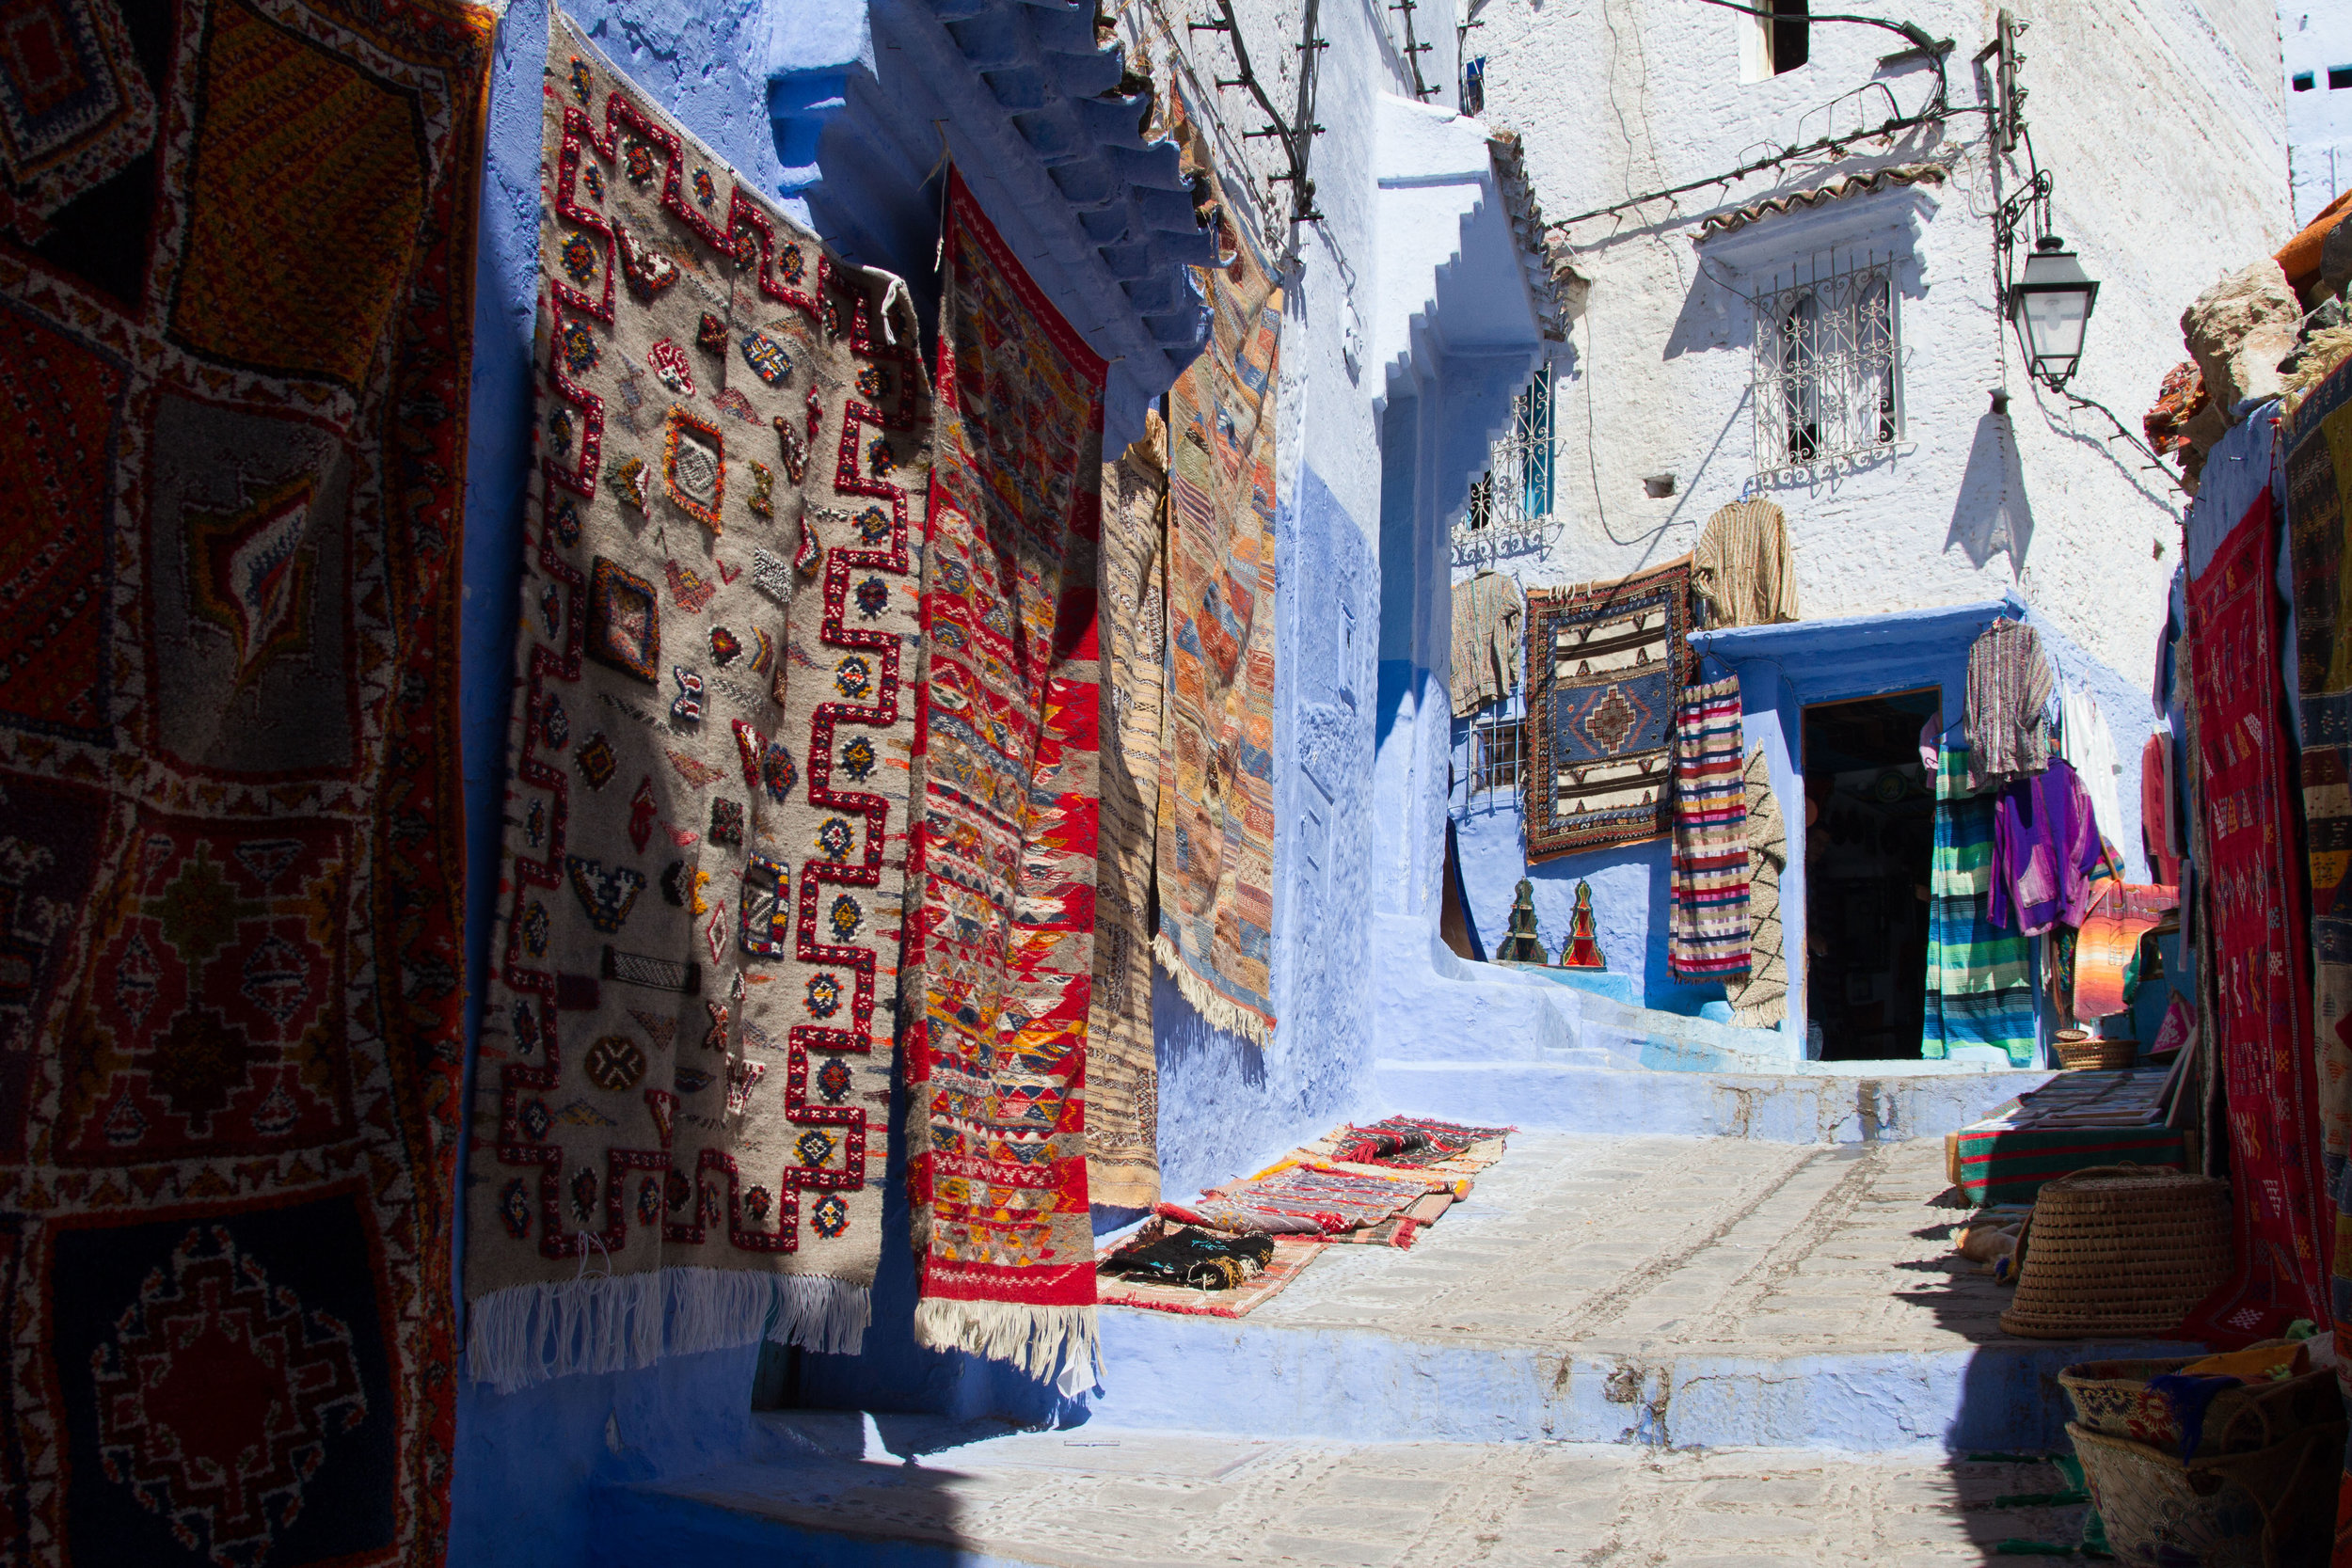 A rug shop in Chefchaouen